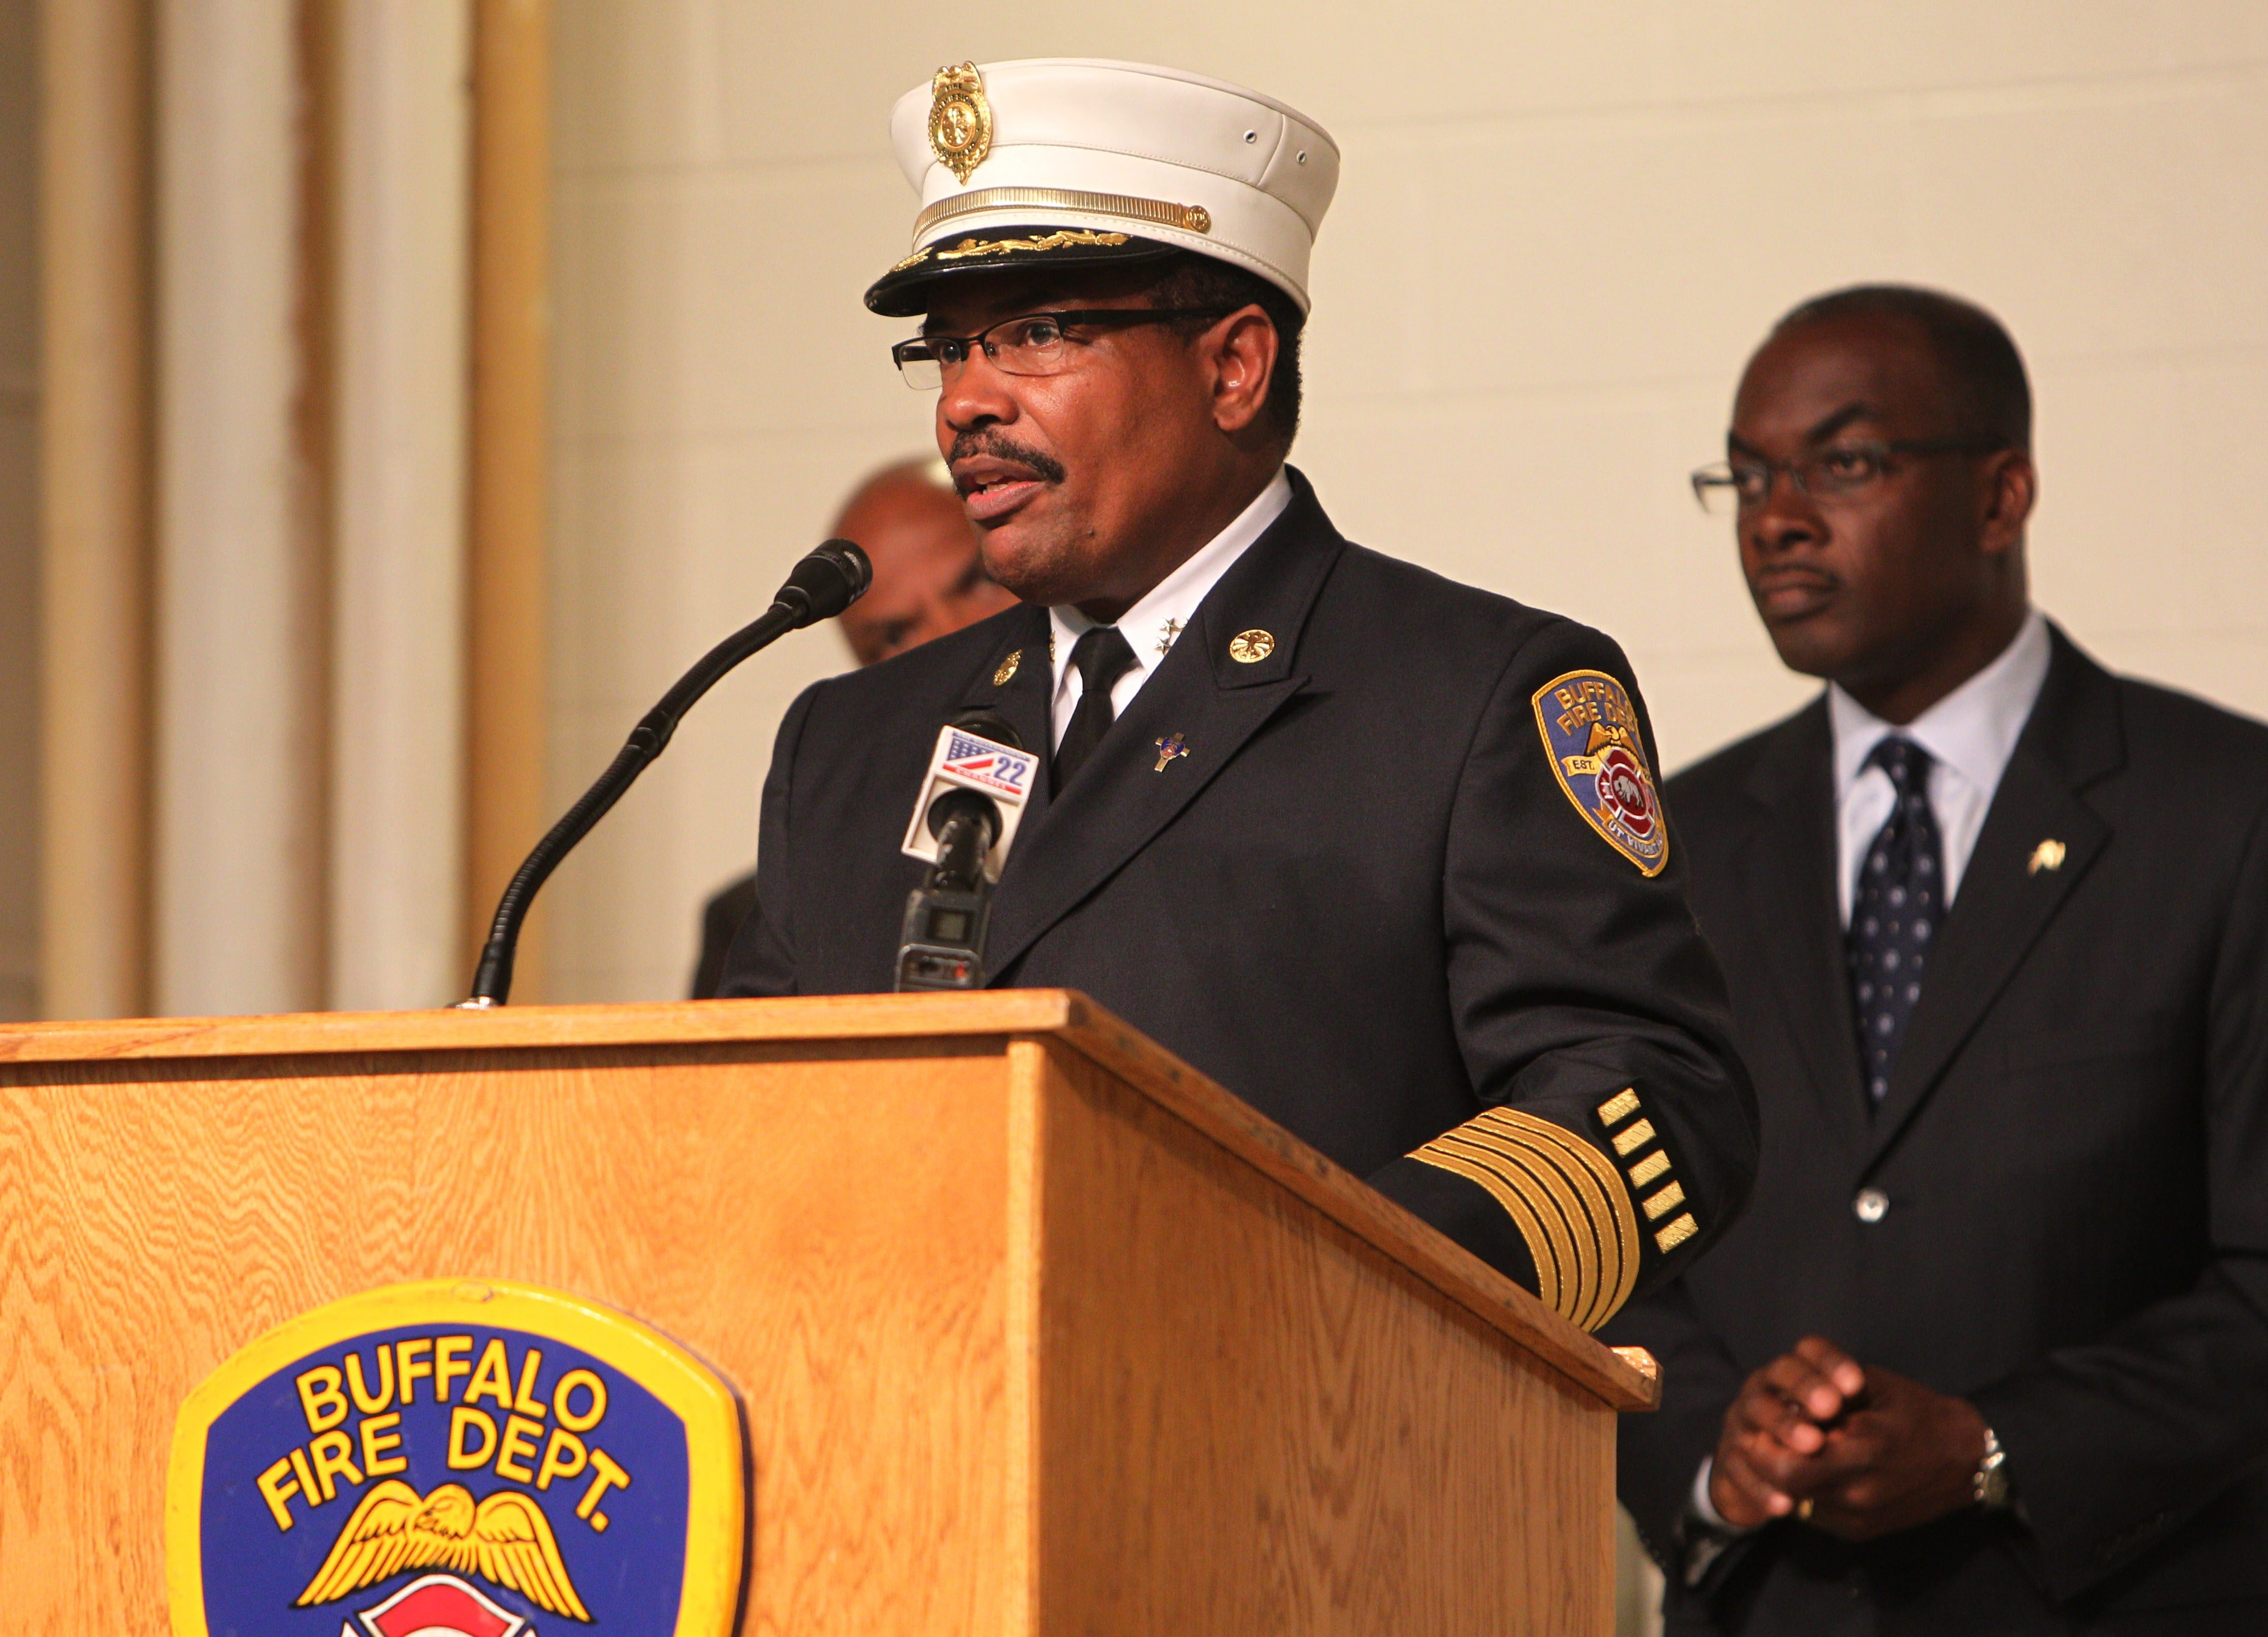 The Buffalo Fire Department held its promotions ceremony, Monday, Sept. 16, 2013.  43 firefighters were promoted to positions of division chief, battalion chief, captain and lieutenant. Fire Commissioner Garnell Whitfield, Jr. makes his remarks after Mayor Byron Brown, behind on right.  (Sharon Cantillon/Buffalo News)